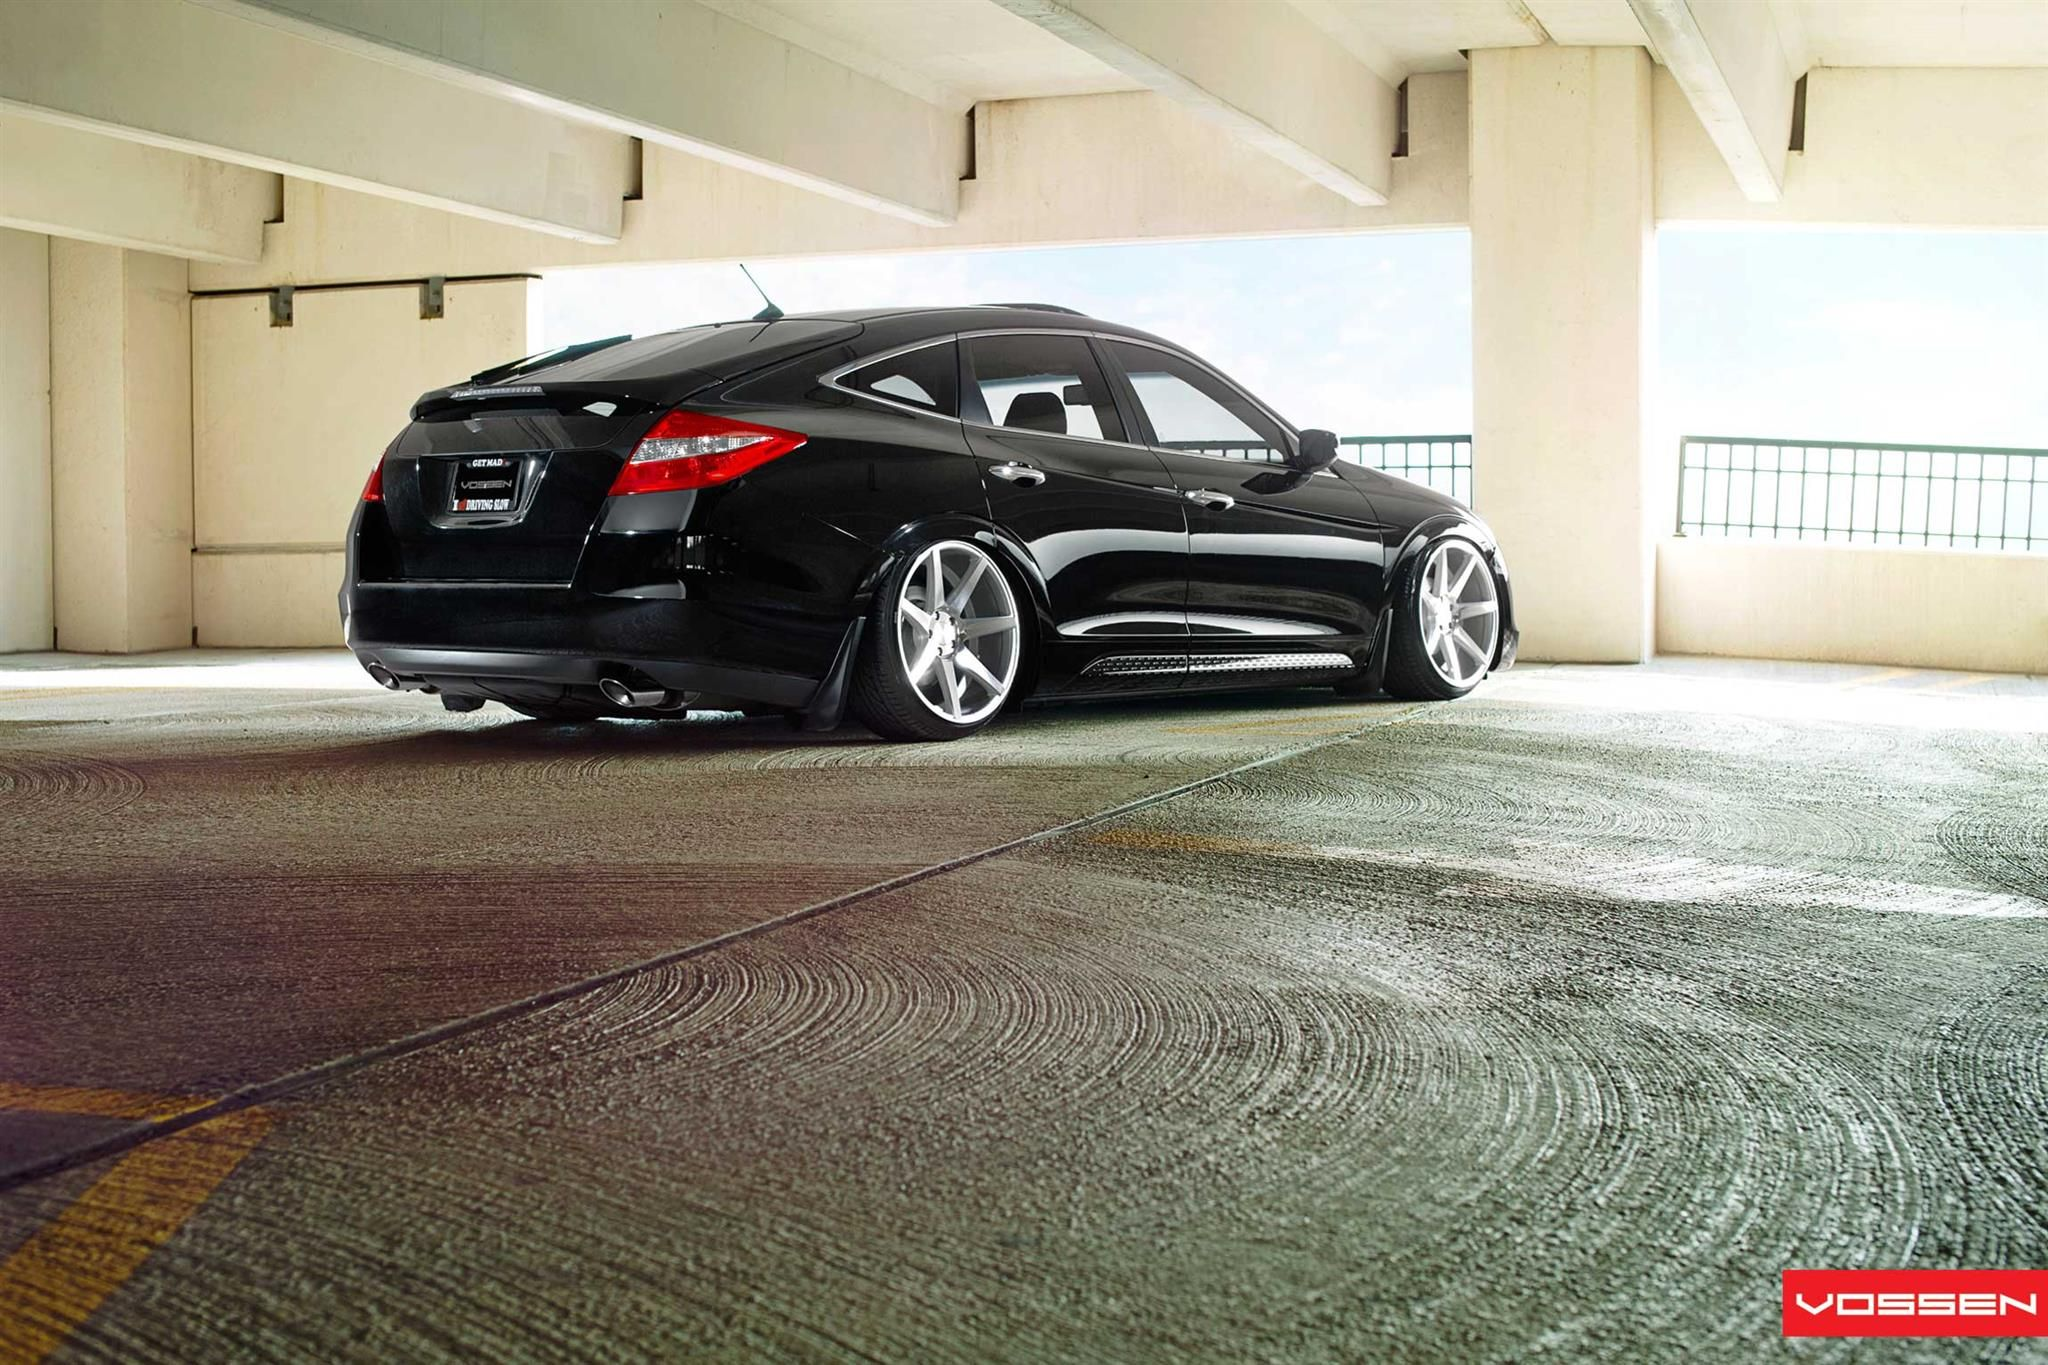 Honda Crosstour with Vossen VVSCV7 Wheels by Vossen Wheels. Click to view  more photos and mod info.